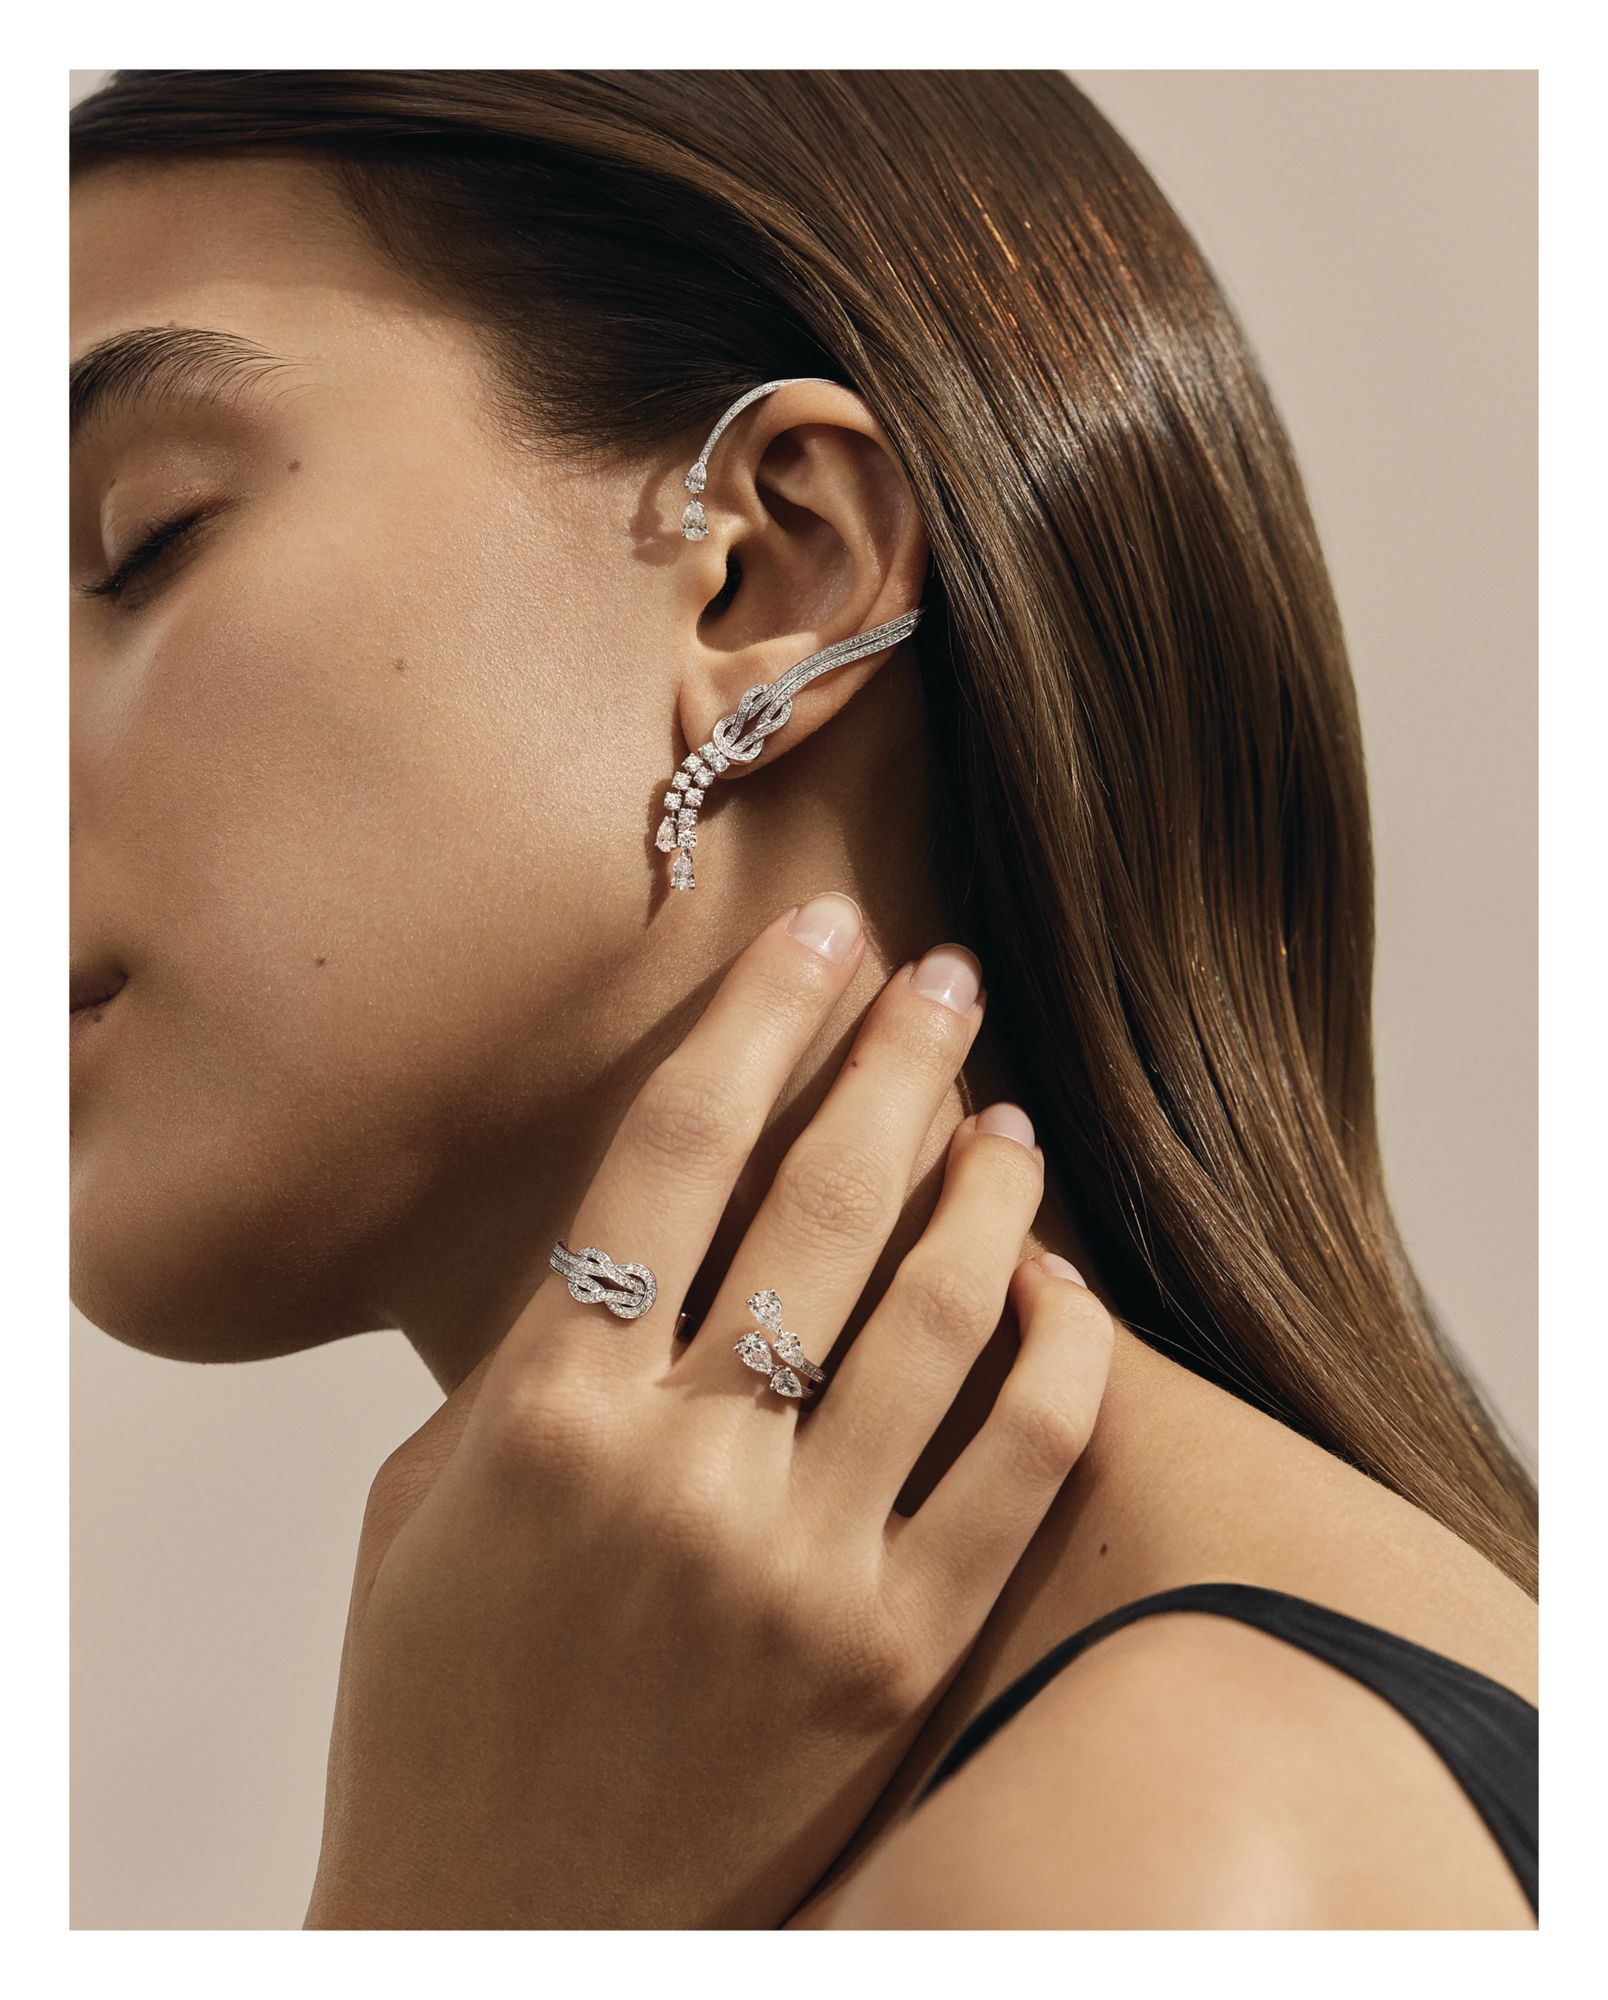 From Chaumet to Chopard: The Newest Jewellery Launches in January 2021